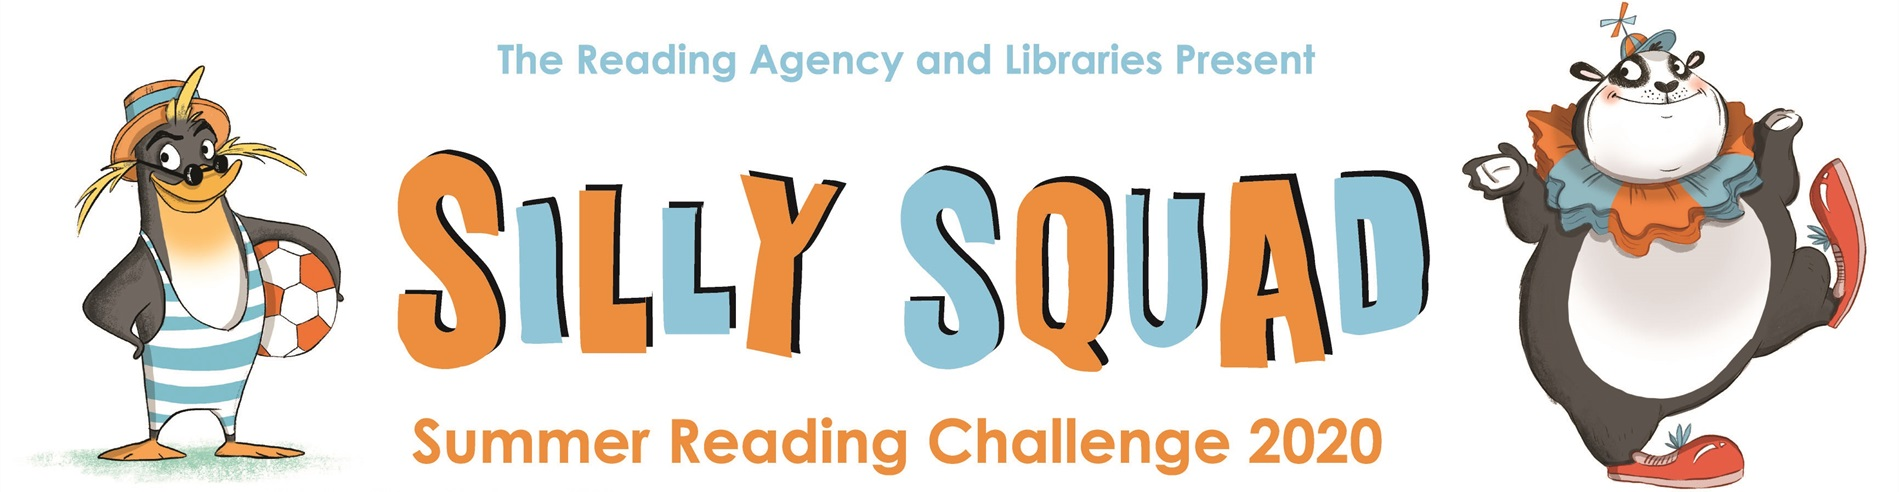 The Reading Agency and Libraries presents: Silly Squad, Summer Reading Challenge 2020